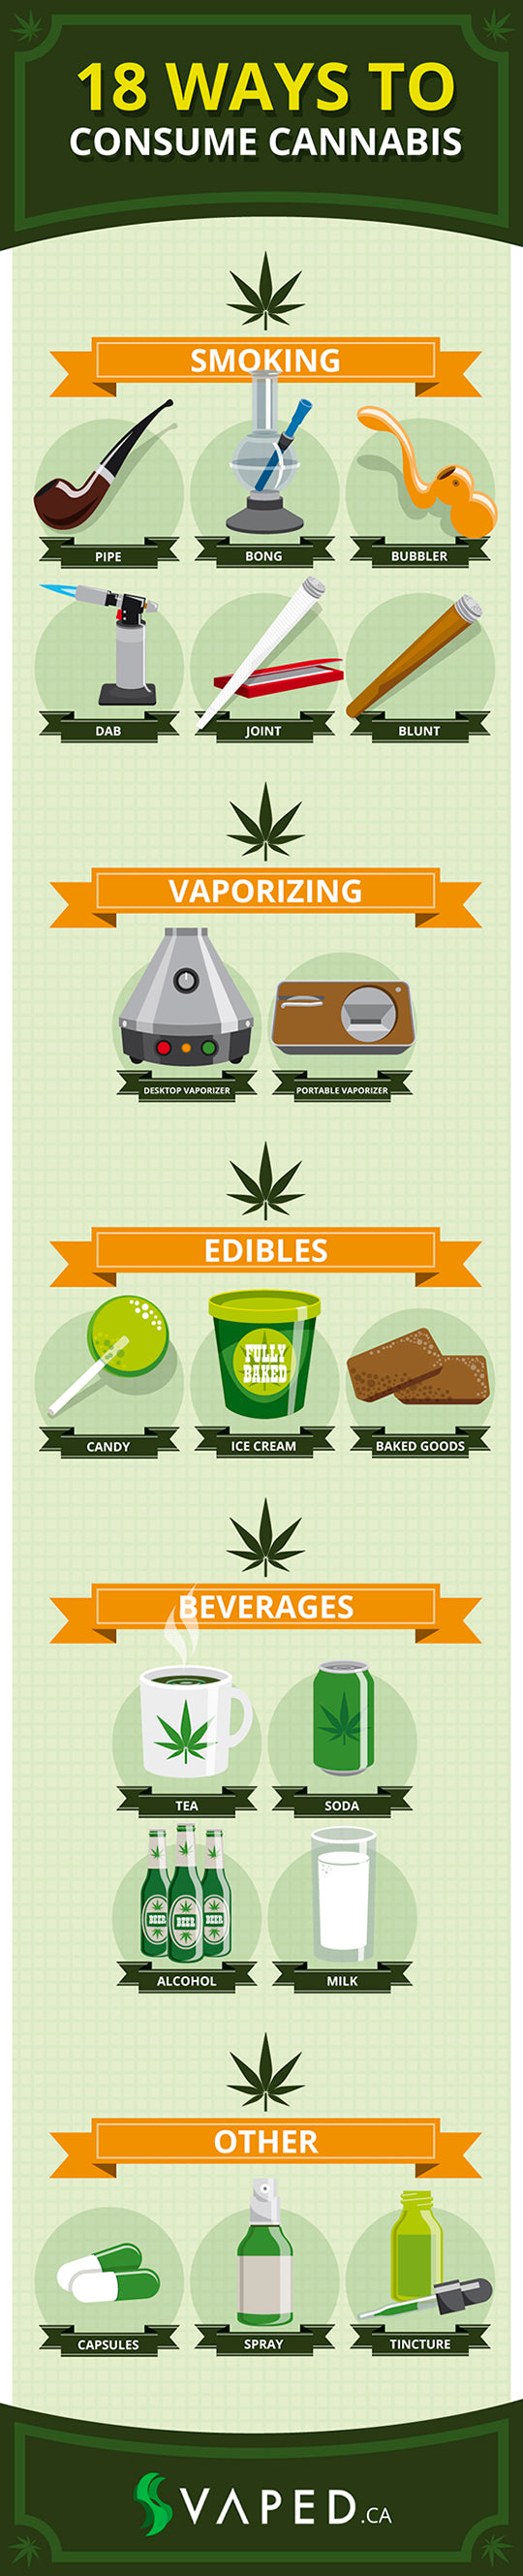 Different ways to consume cannabis